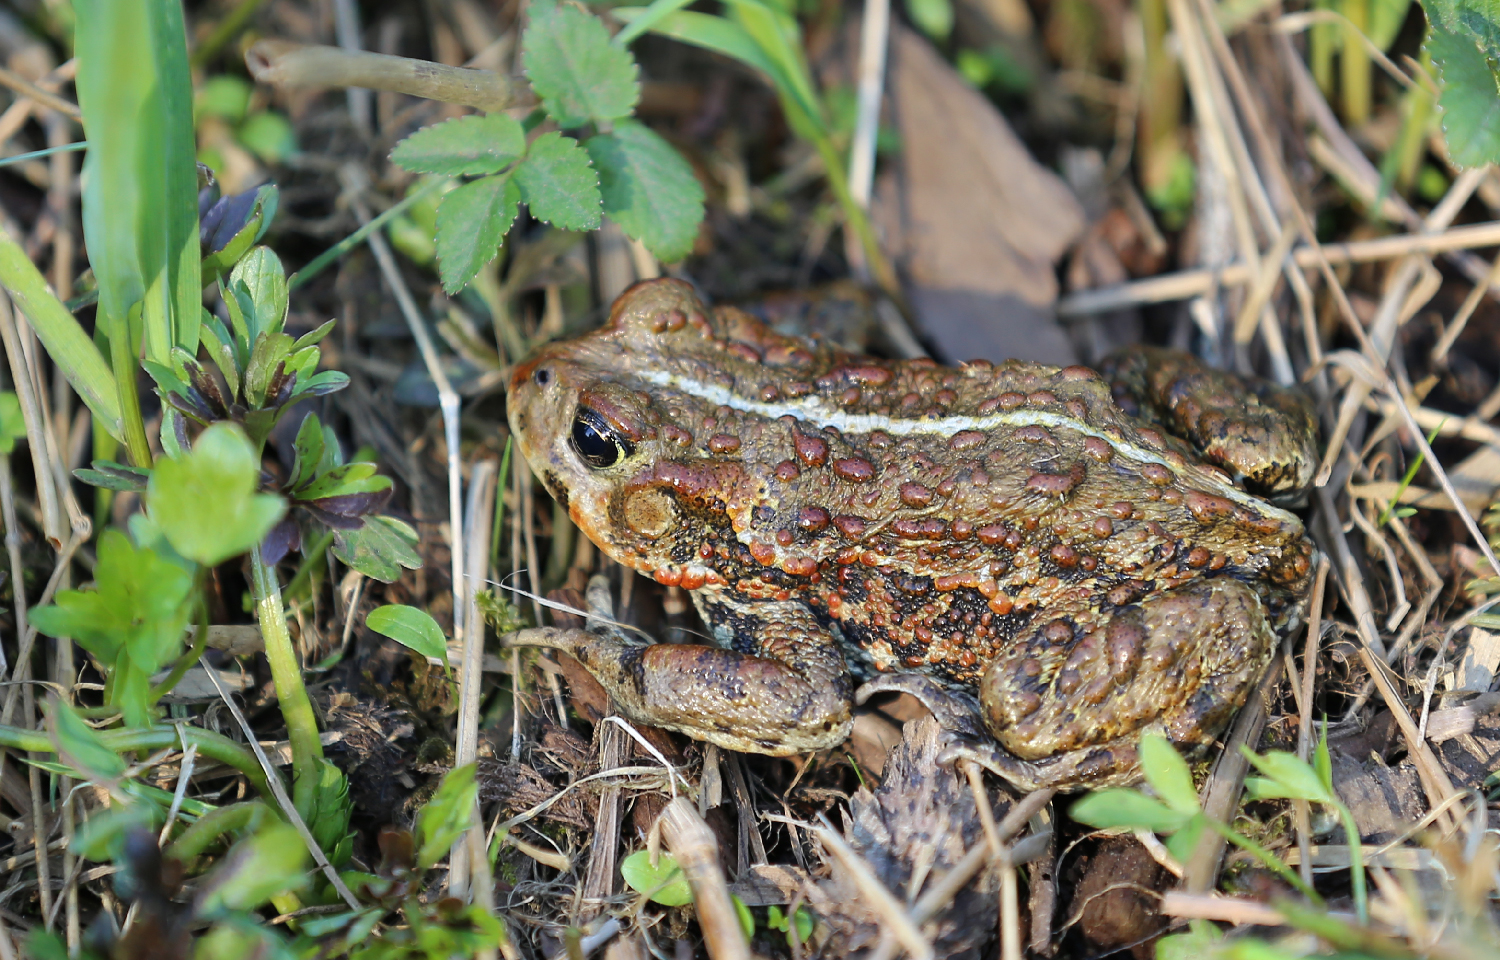 This shy adult toad is about four inches long.